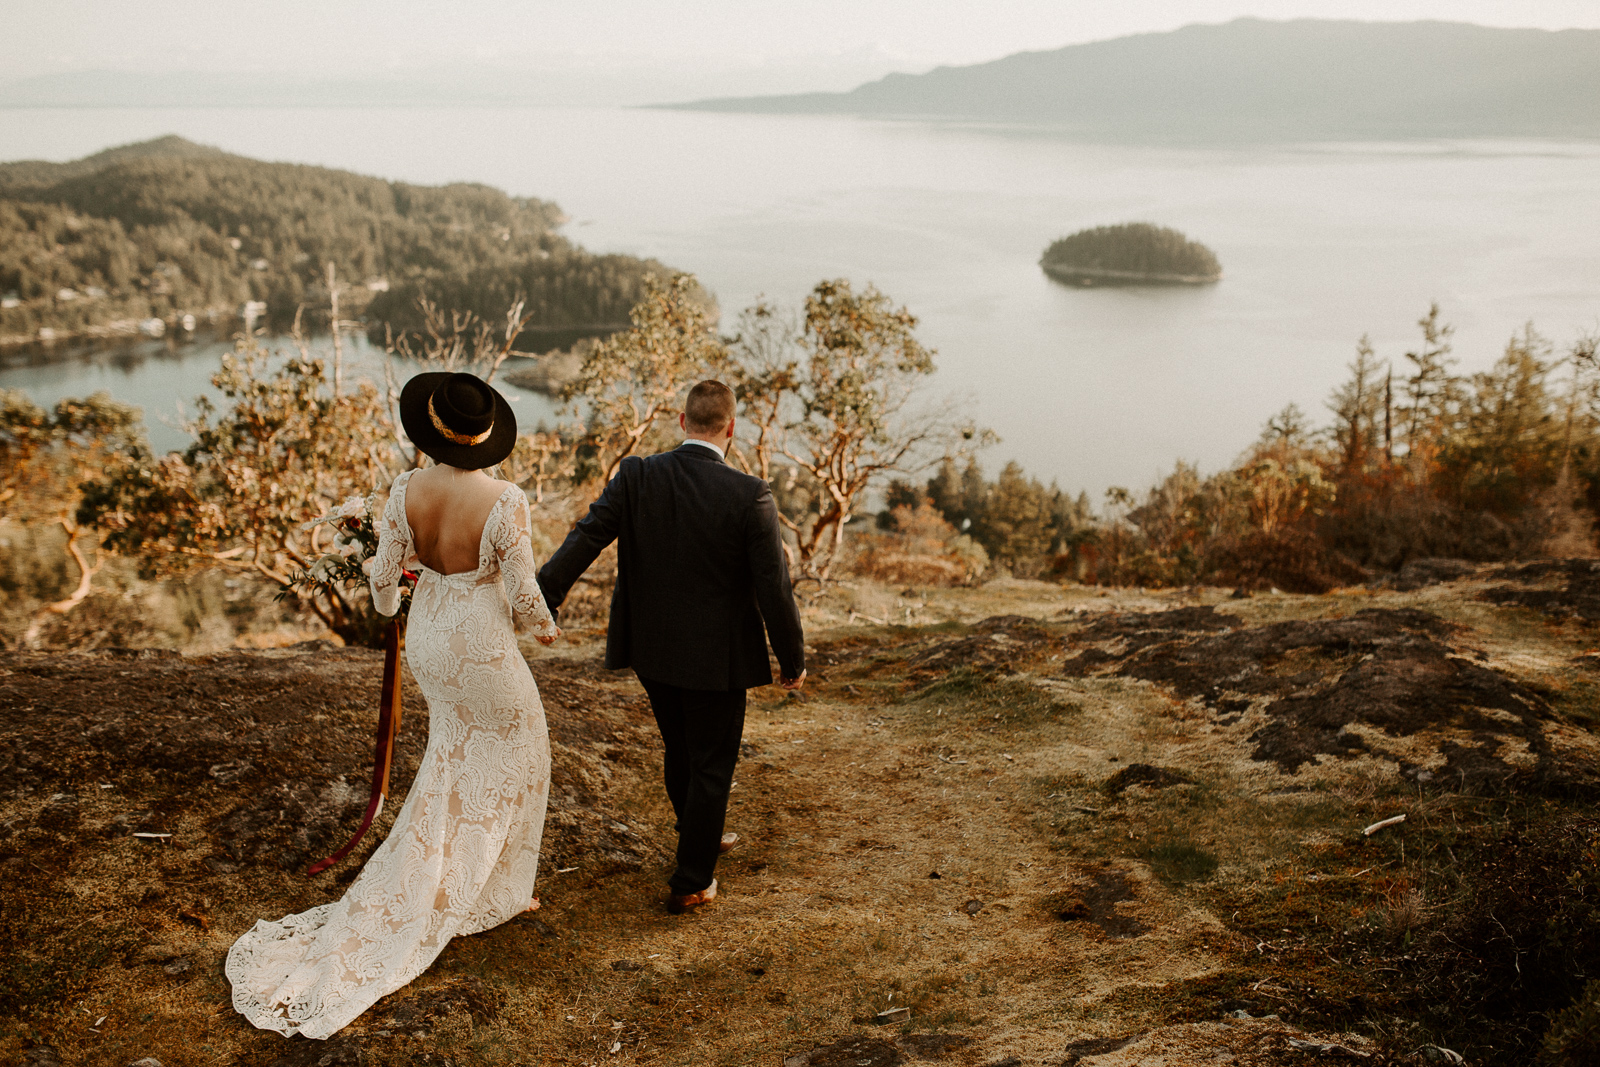 Luke Lambertson Photo_BritishColumbia_Canada_AdventurousCouple_Elopement_IMG-7921.jpg